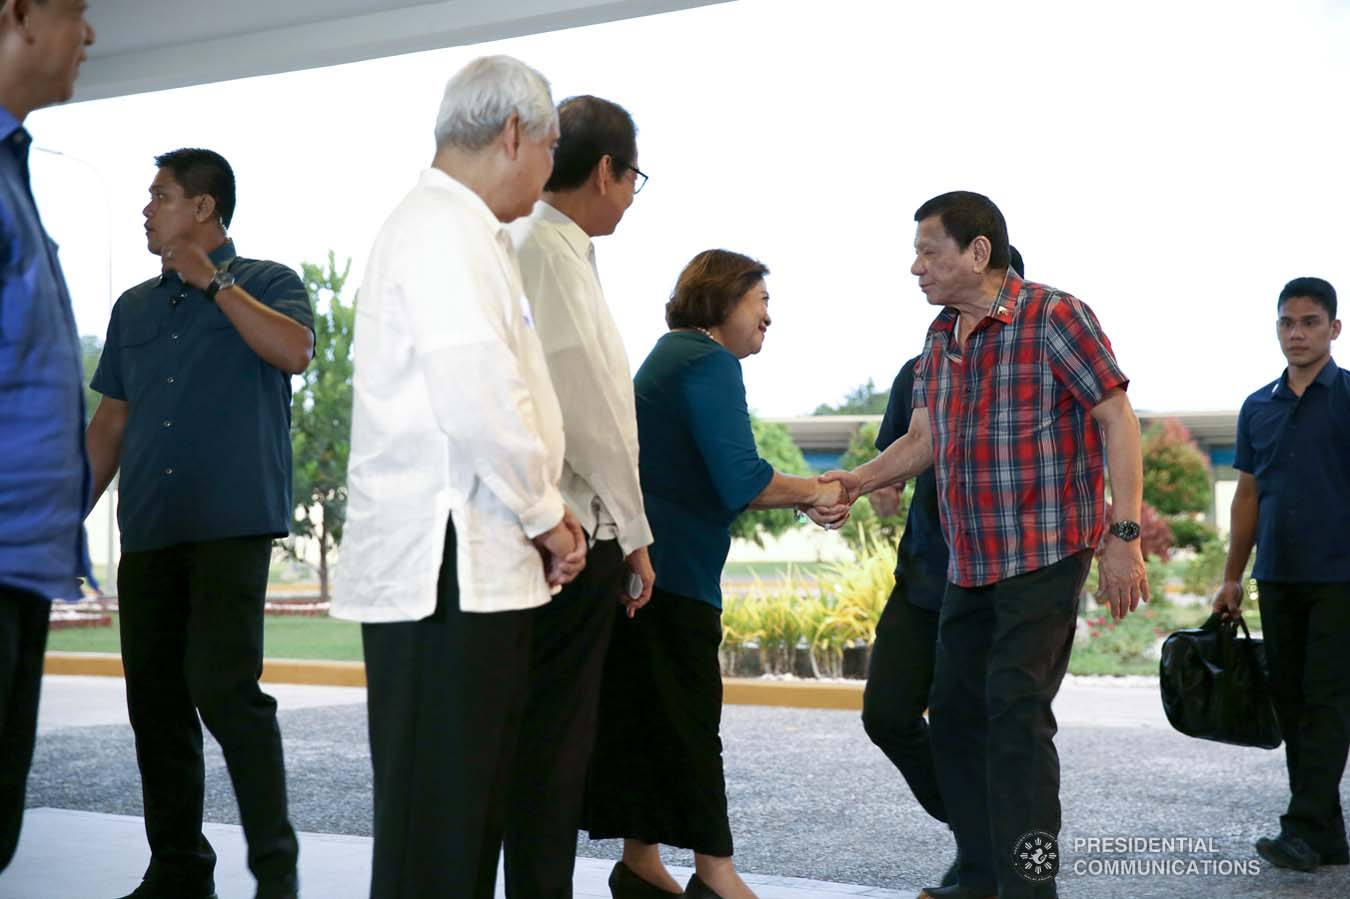 President Rodrigo Roa Duterte receives a warm welcome upon his arrival at the Sarangani Energy Corporation (SEC) Plant Site in Maasim, Sarangani Province for the inauguration of SEC's 105-Megawatt Coal-Fired Power Plant Phase 2 and the launch of the 14.5-Megawatt Hydropower Project of Siguil Hydro Power Corporation on November 22, 2019. SIMEON CELI JR./PRESIDENTIAL PHOTO